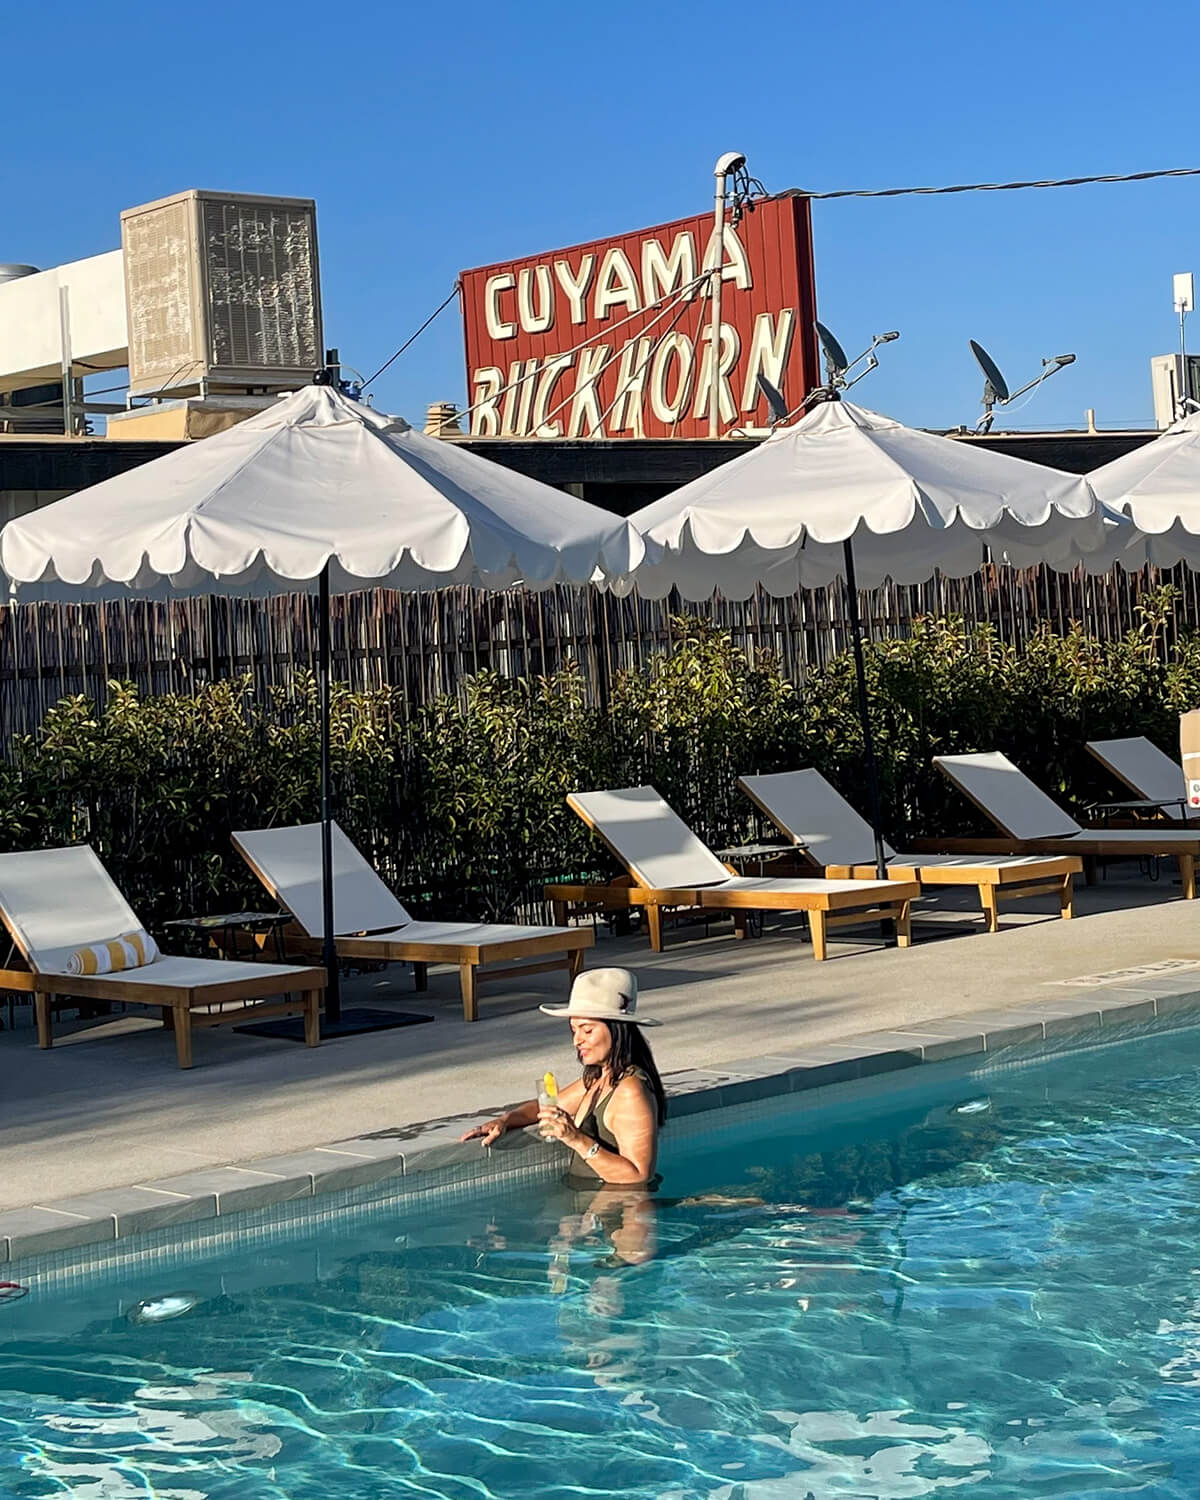 woman in pool at cuyama buckhorn hotel holding drink